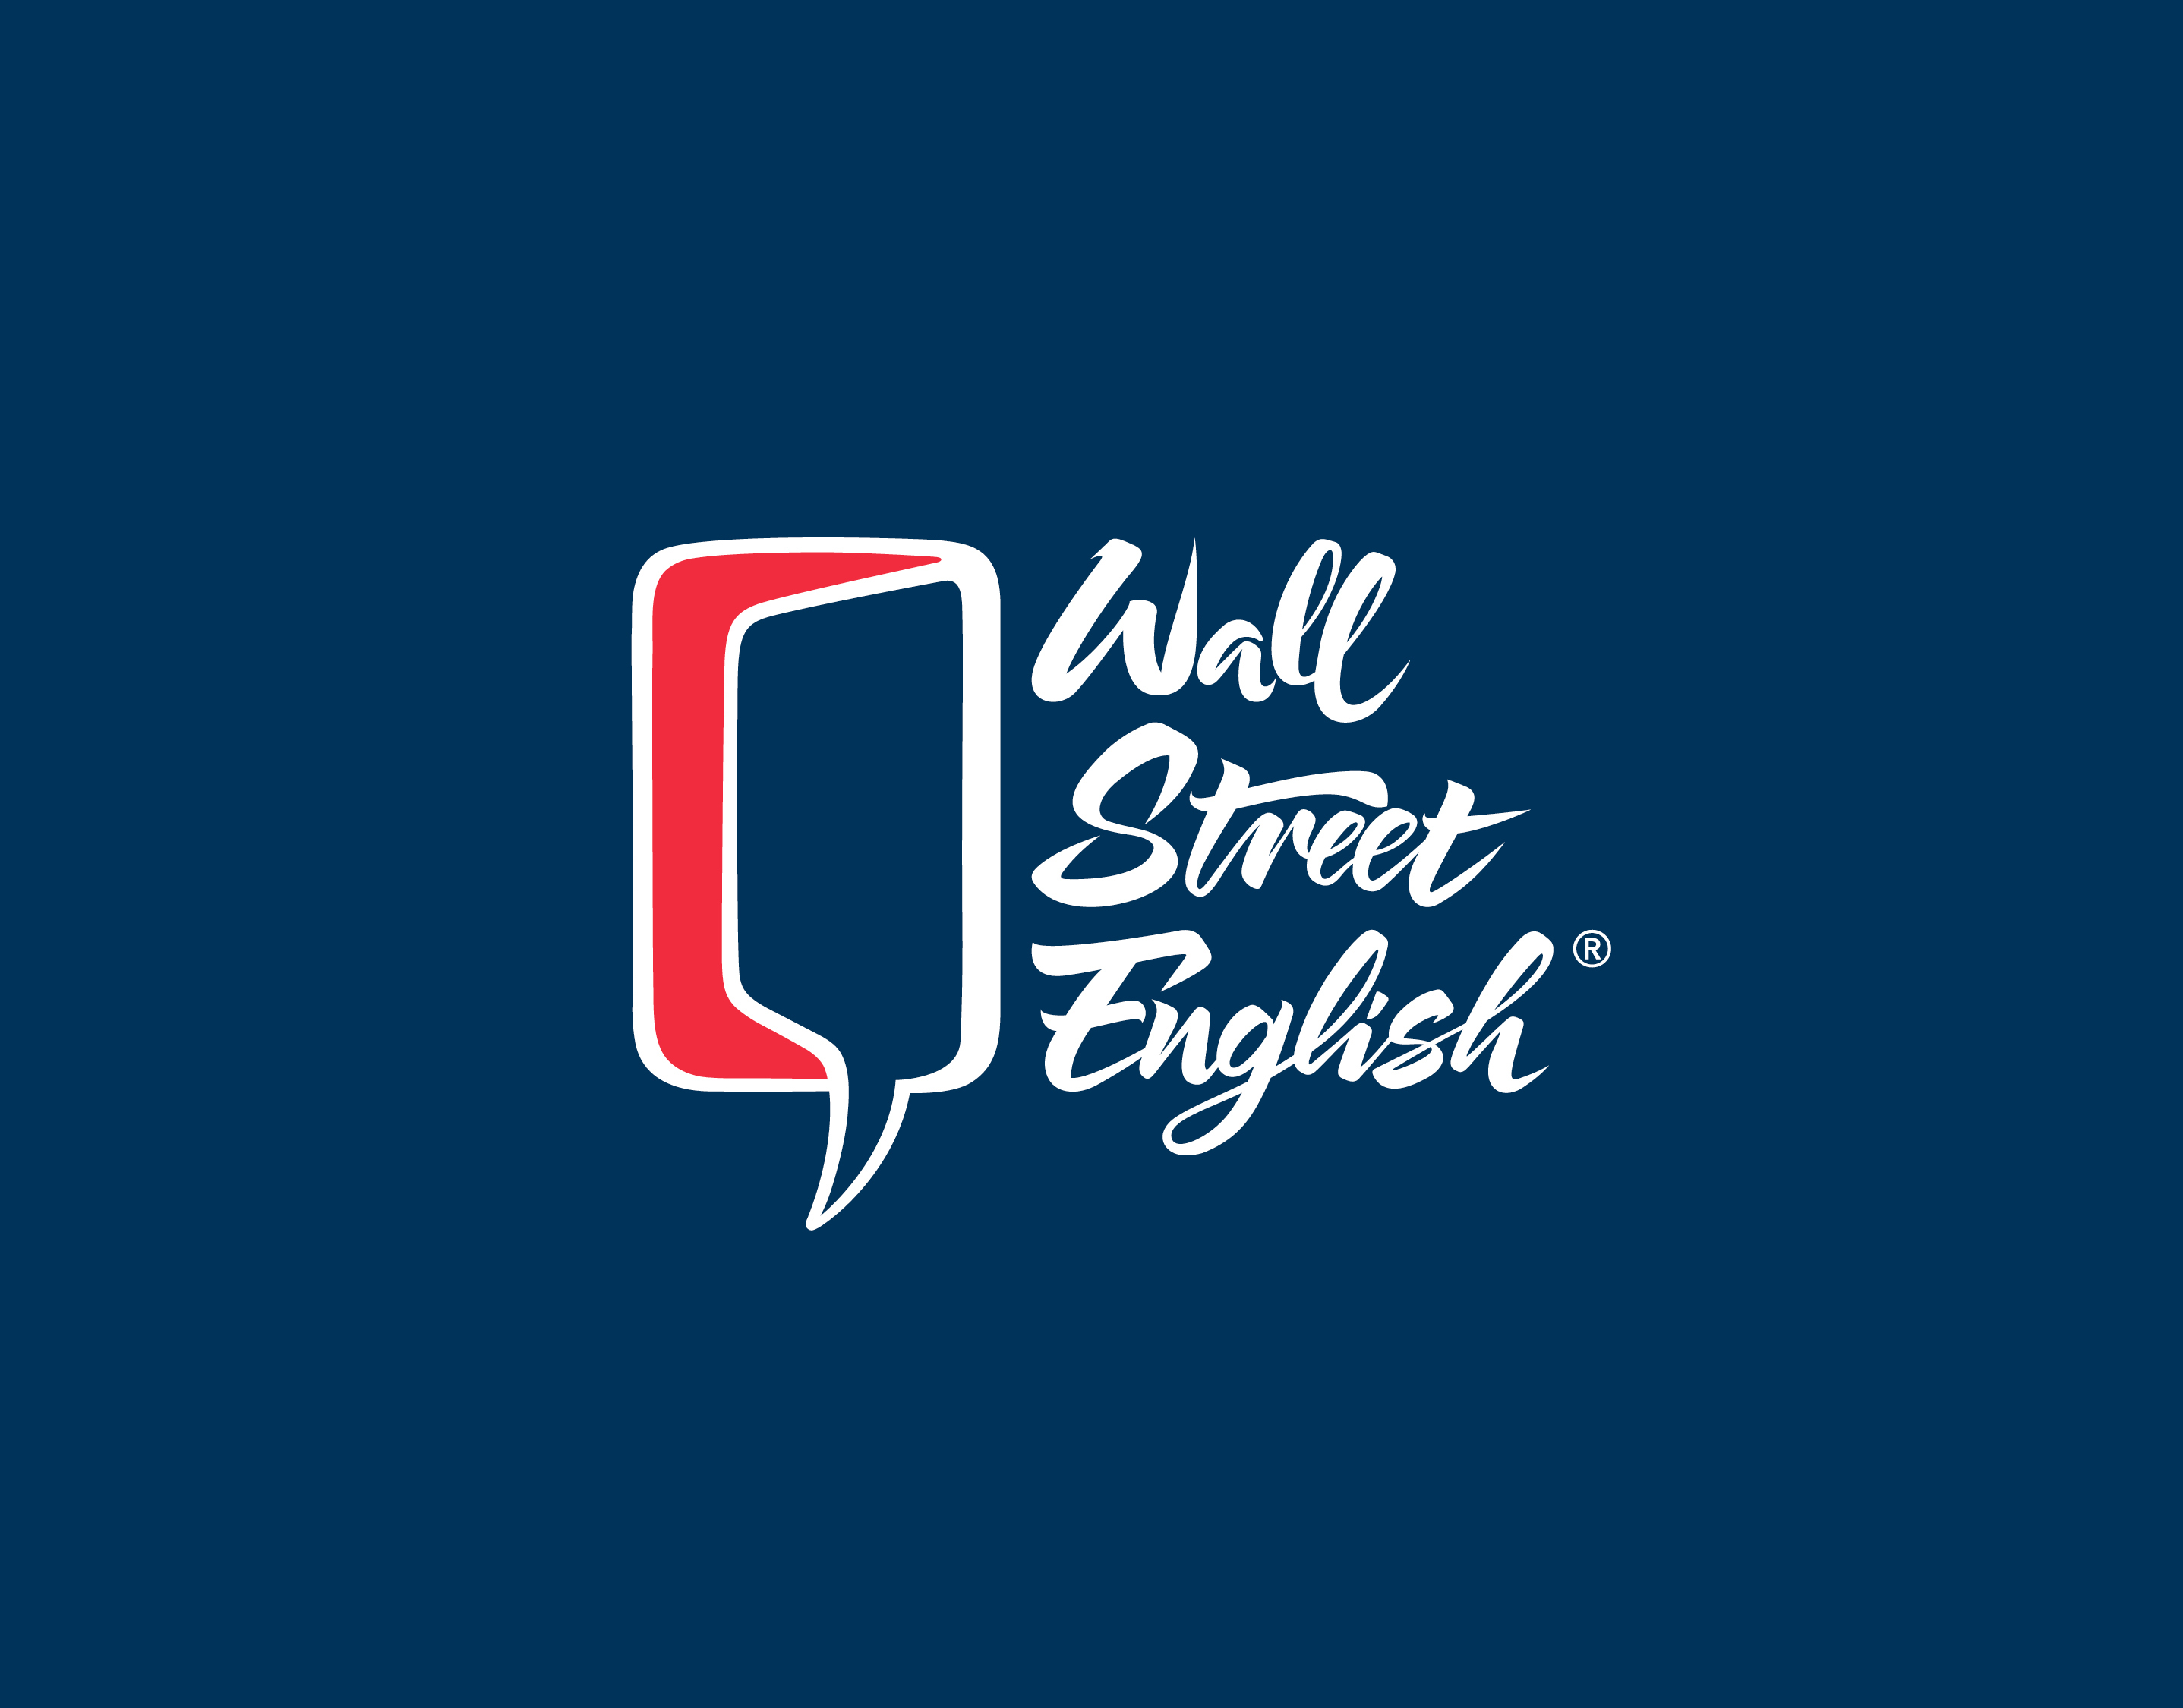 Wall Street English Rebranding